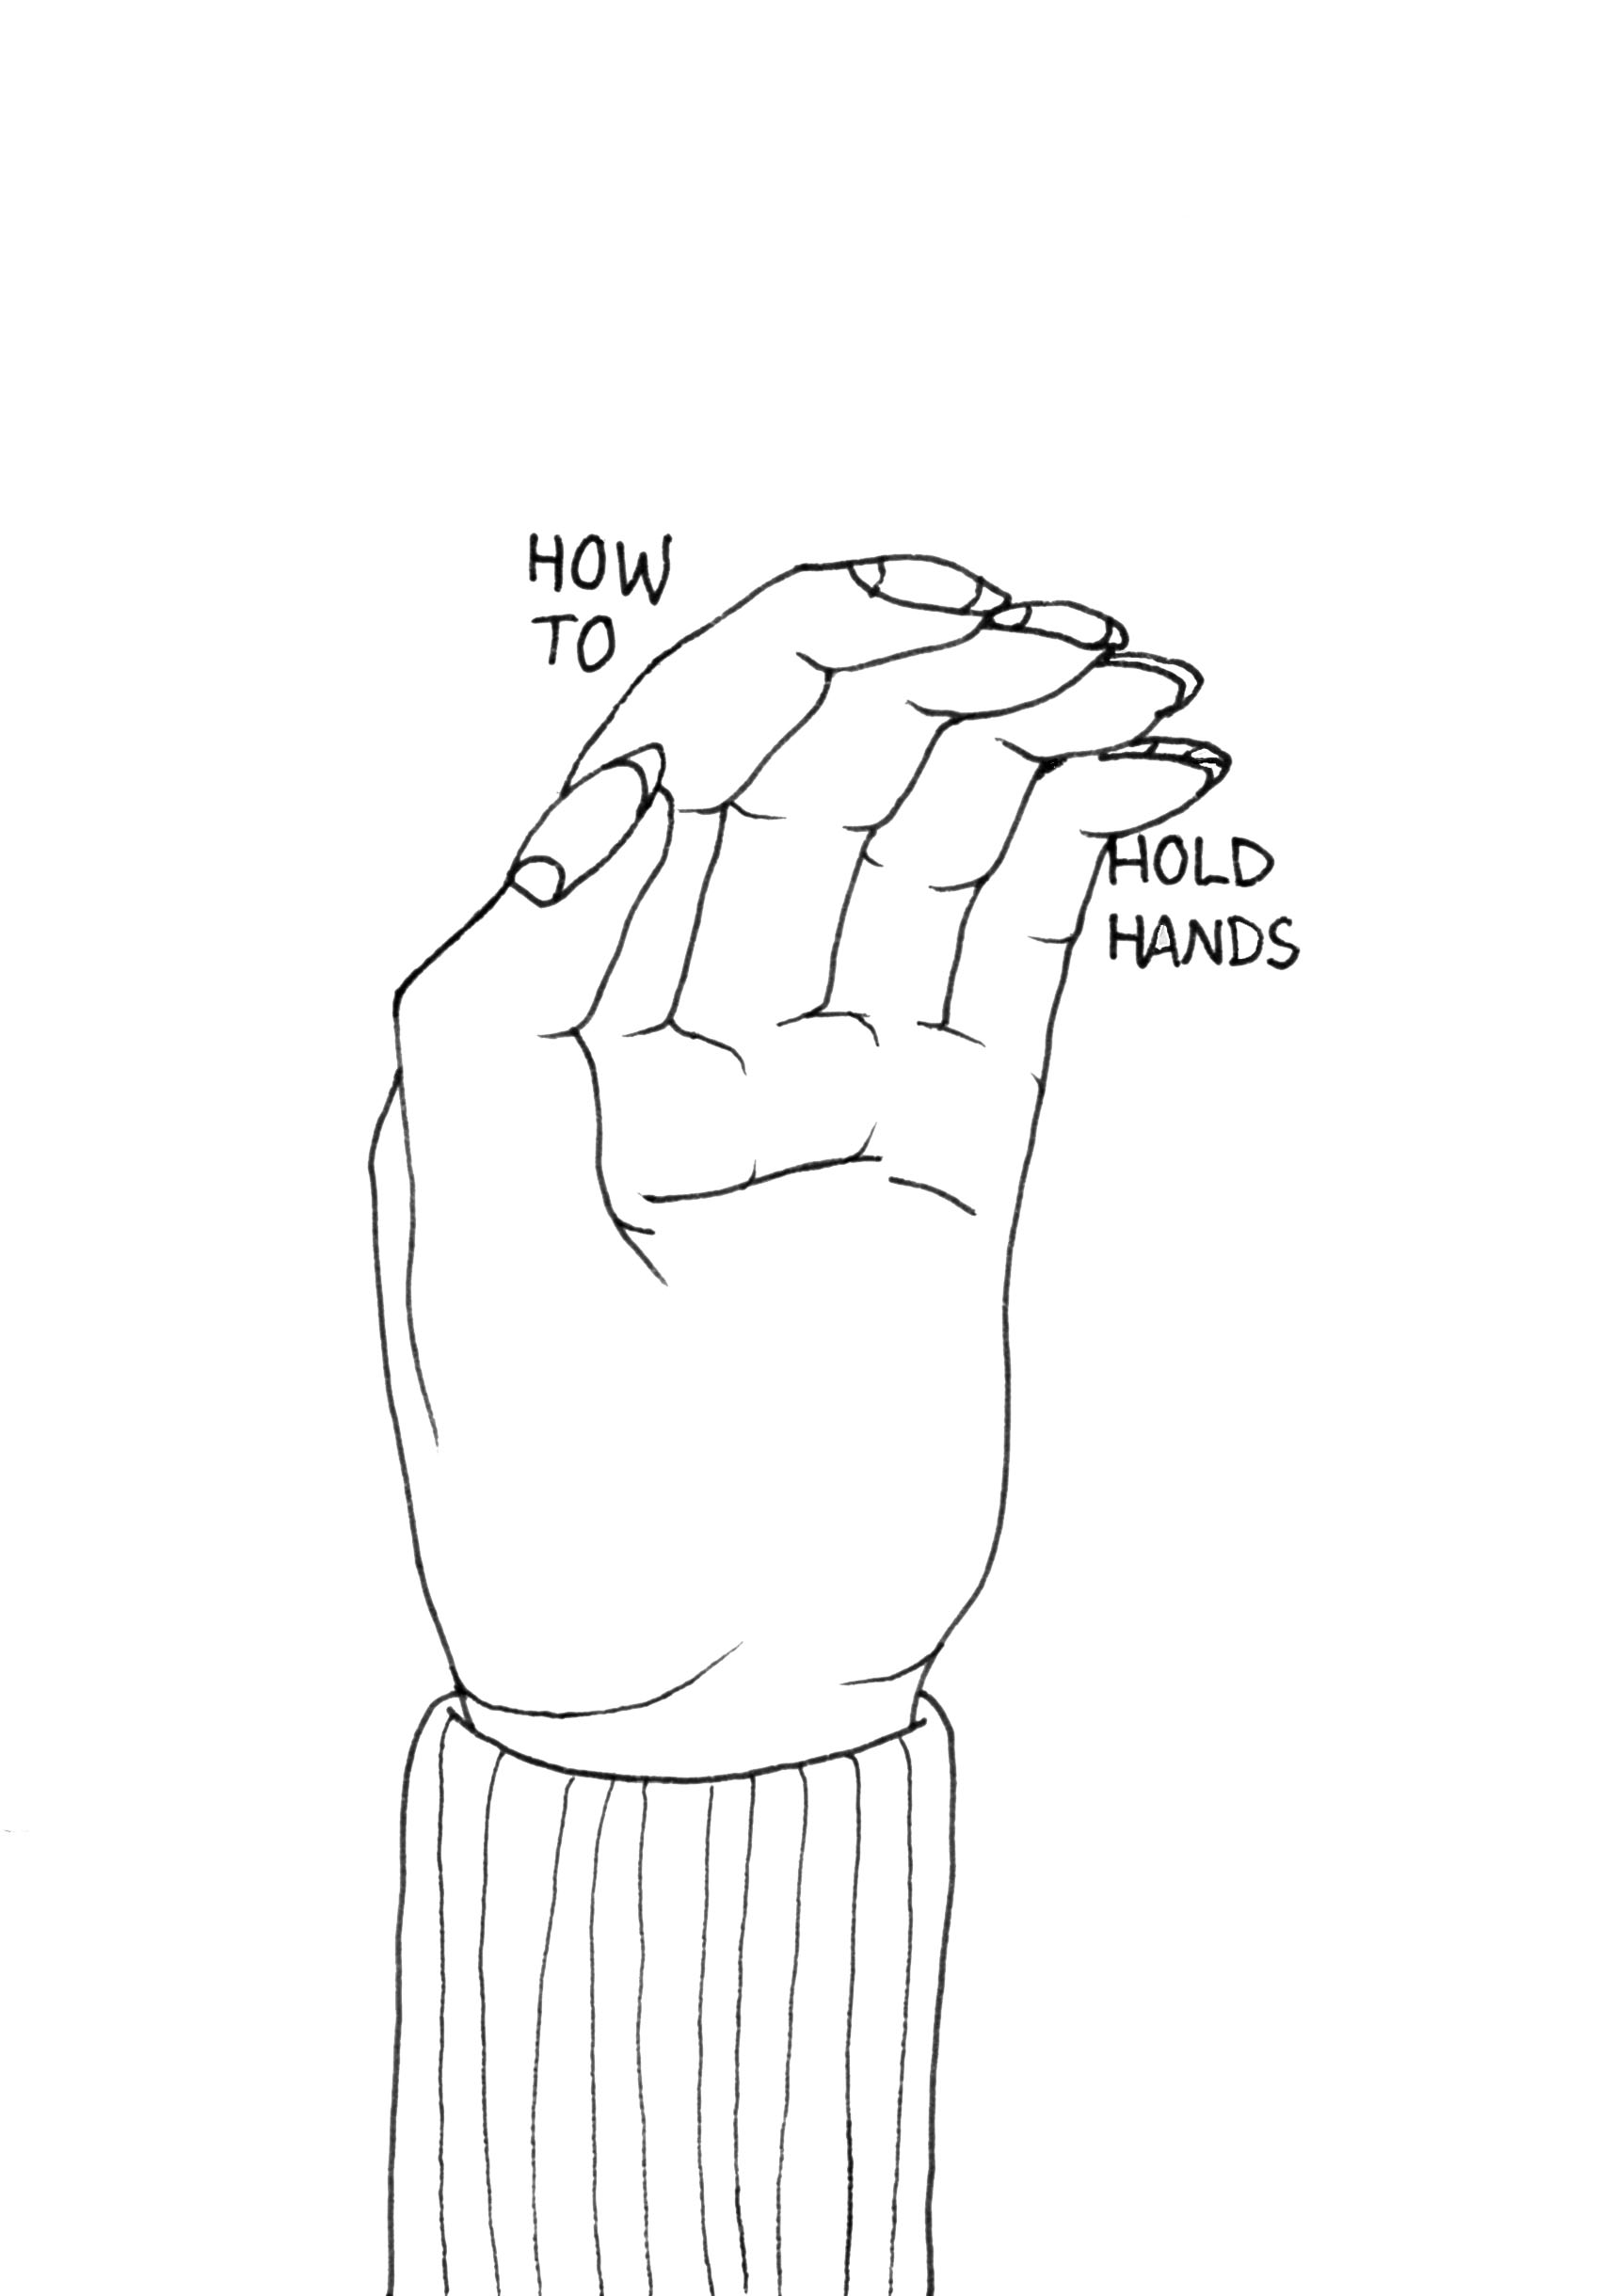 How to hold hands 1.jpeg